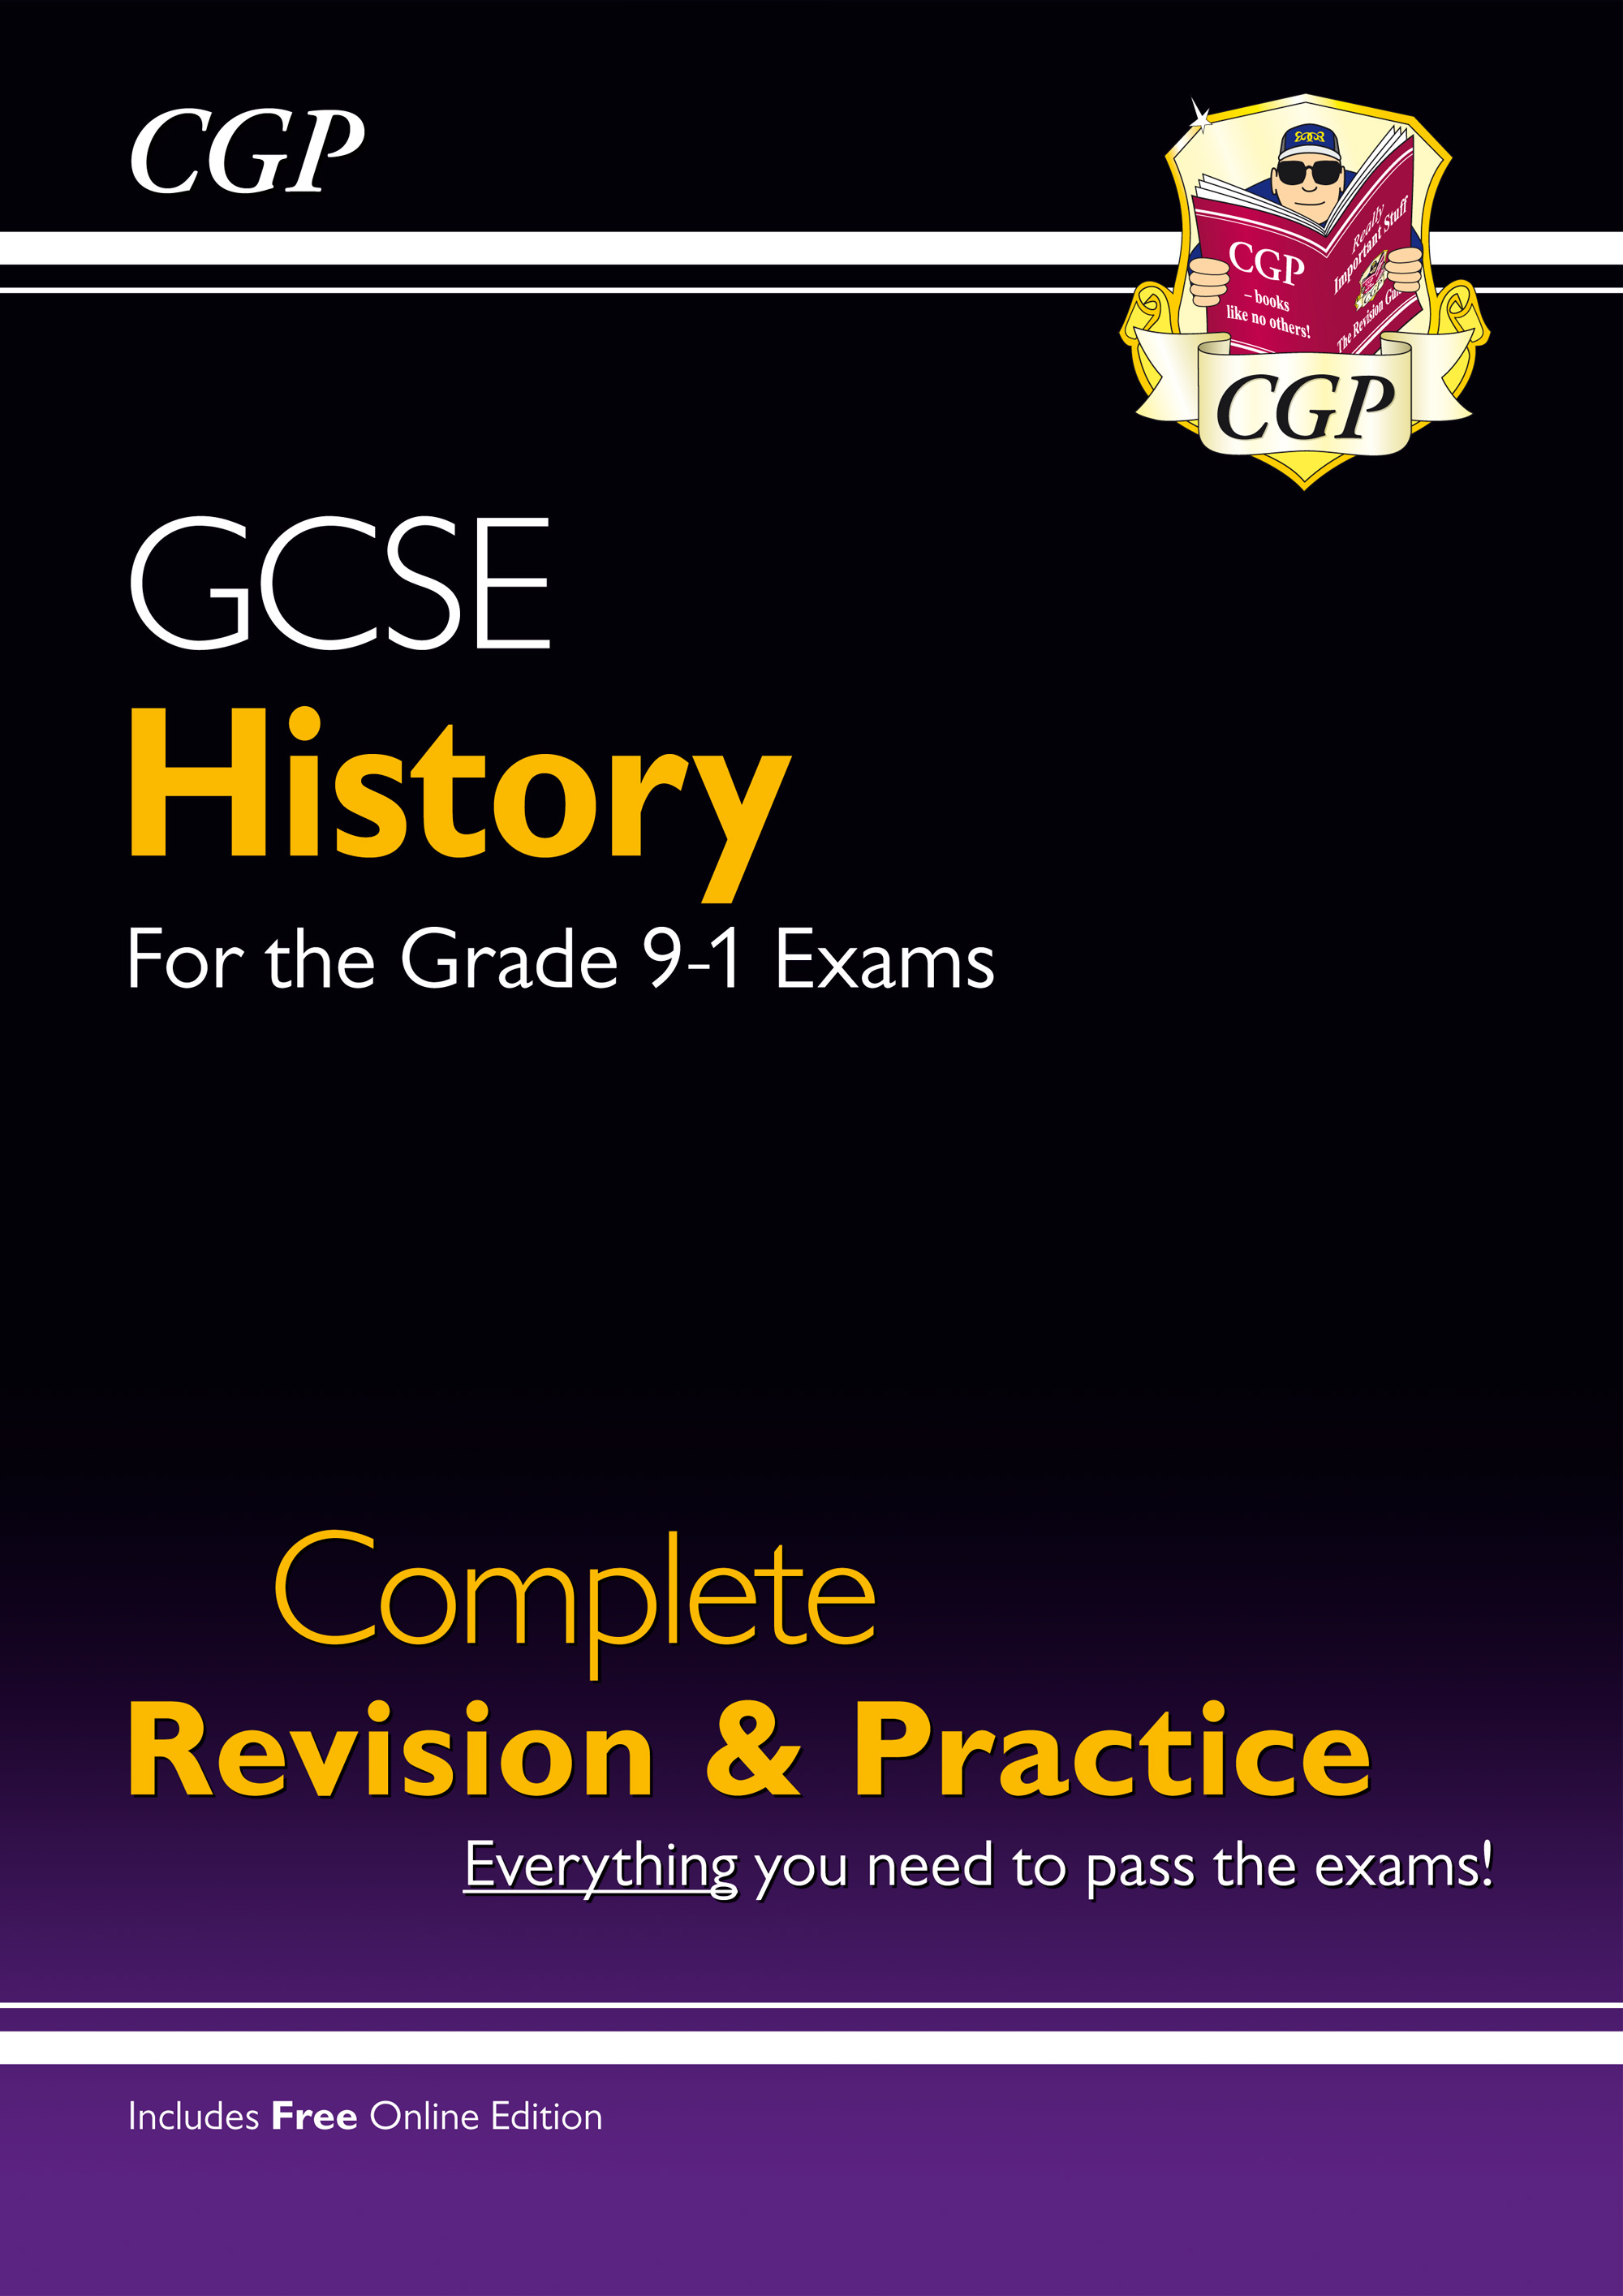 HHS45 - New GCSE History Complete Revision & Practice - for the Grade 9-1 Course (with Online Editio